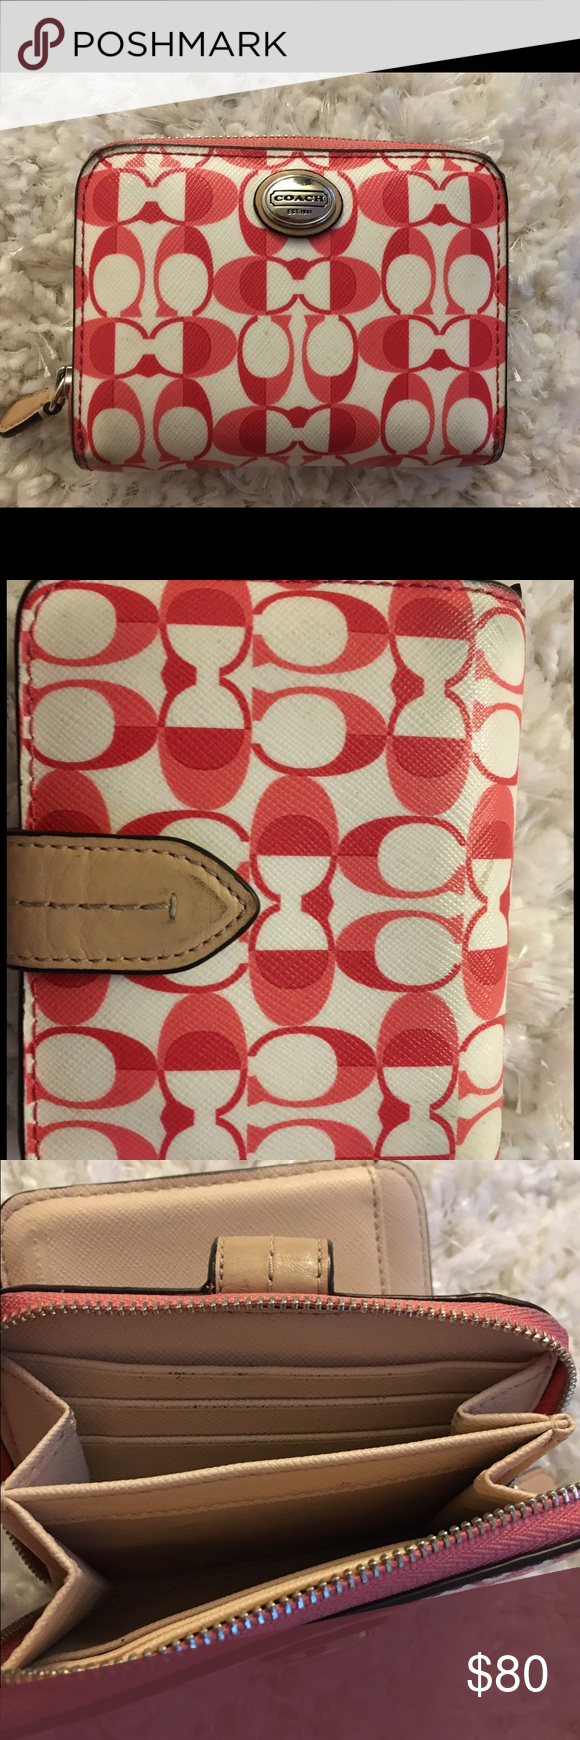 Coach Wallet Rare White Red And Pink Slightly Used Great Condition Bags Wallets